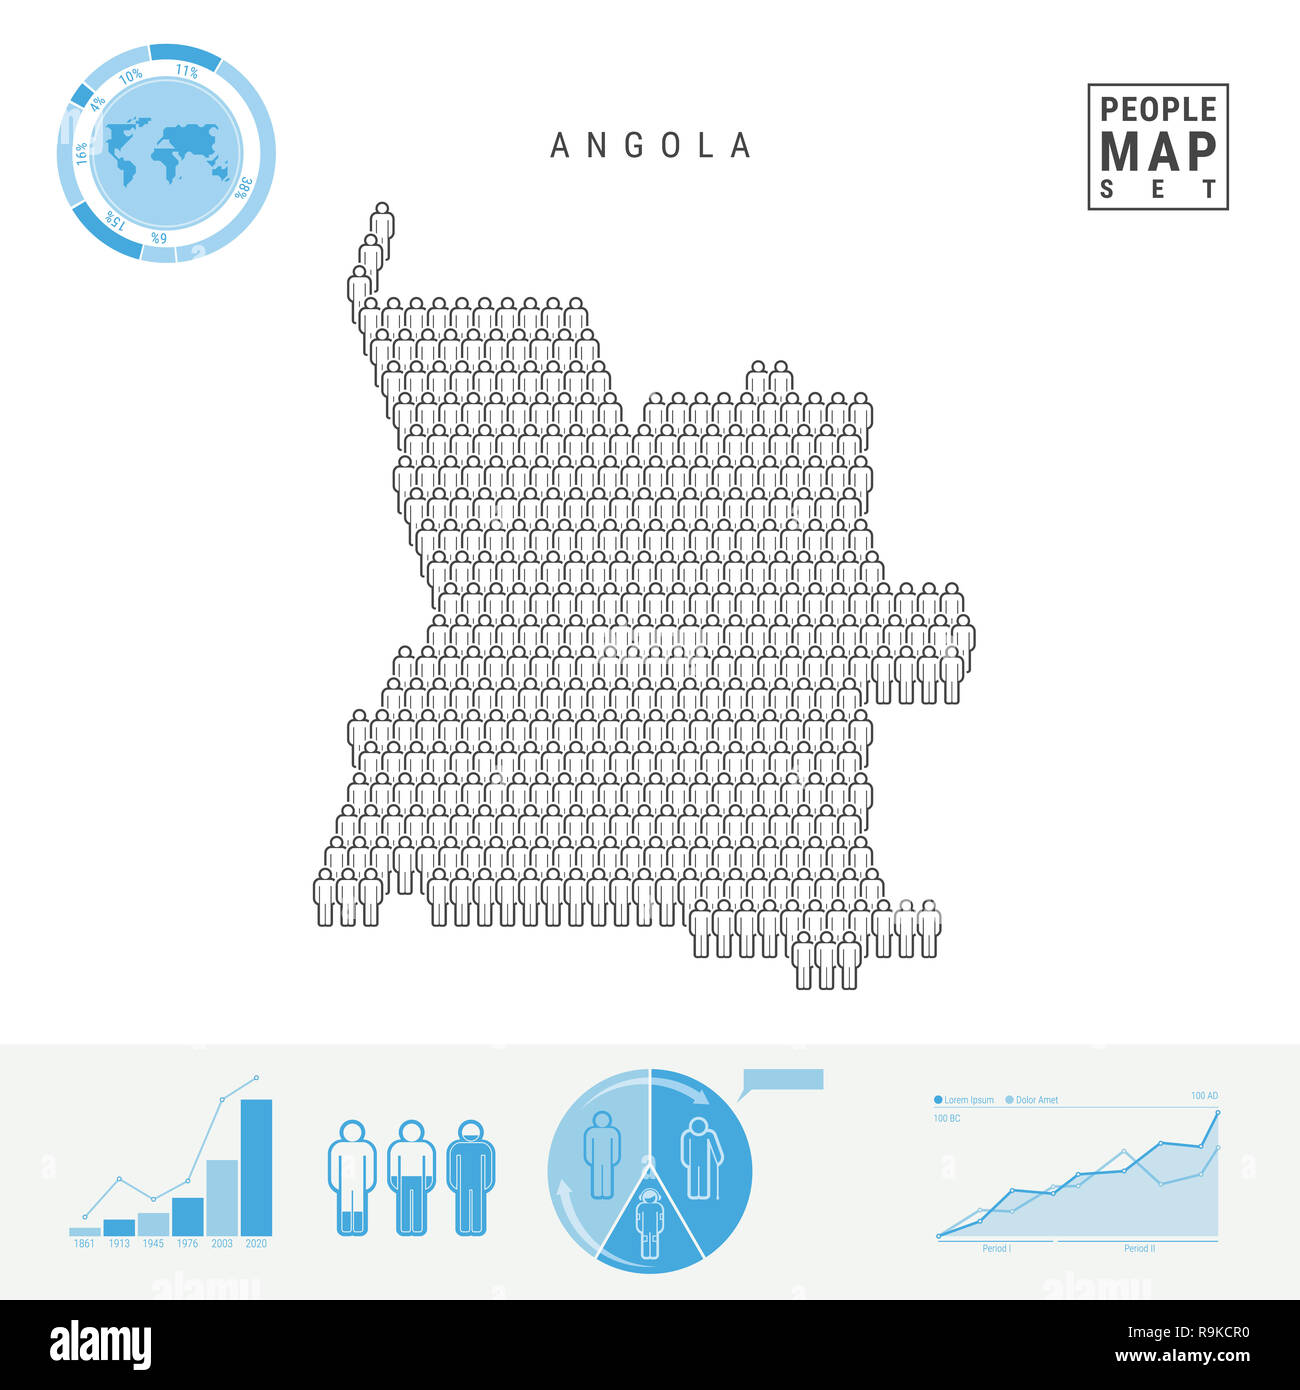 Angola People Icon Map. People Crowd in the Shape of a Map of Angola. Stylized Silhouette of Angola. Population Growth and Aging Infographic Elements. - Stock Image